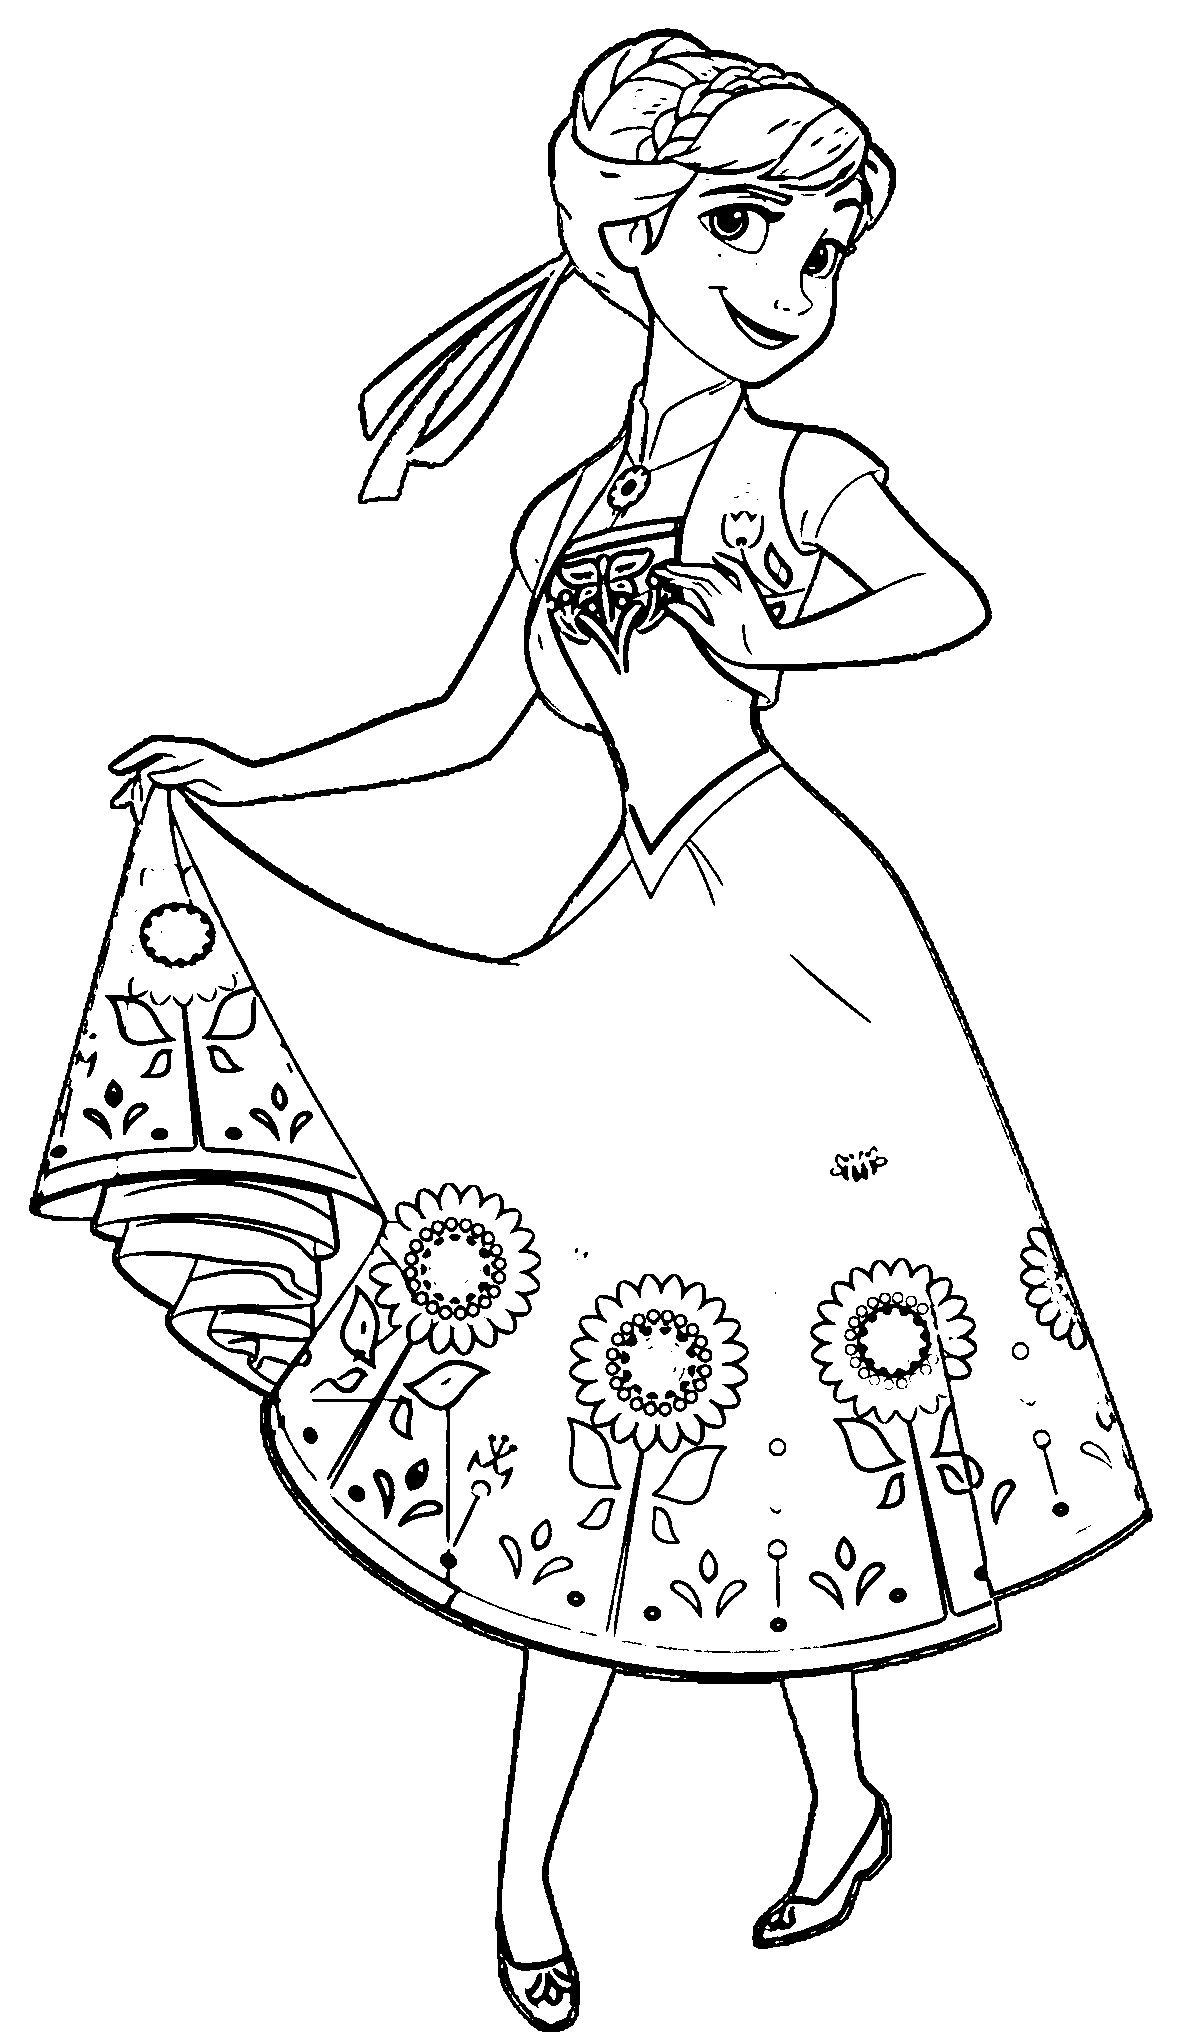 Frozen Fever Coloring Pages To Print Elsa Coloring Pages Frozen Coloring Pages Disney Coloring Pages